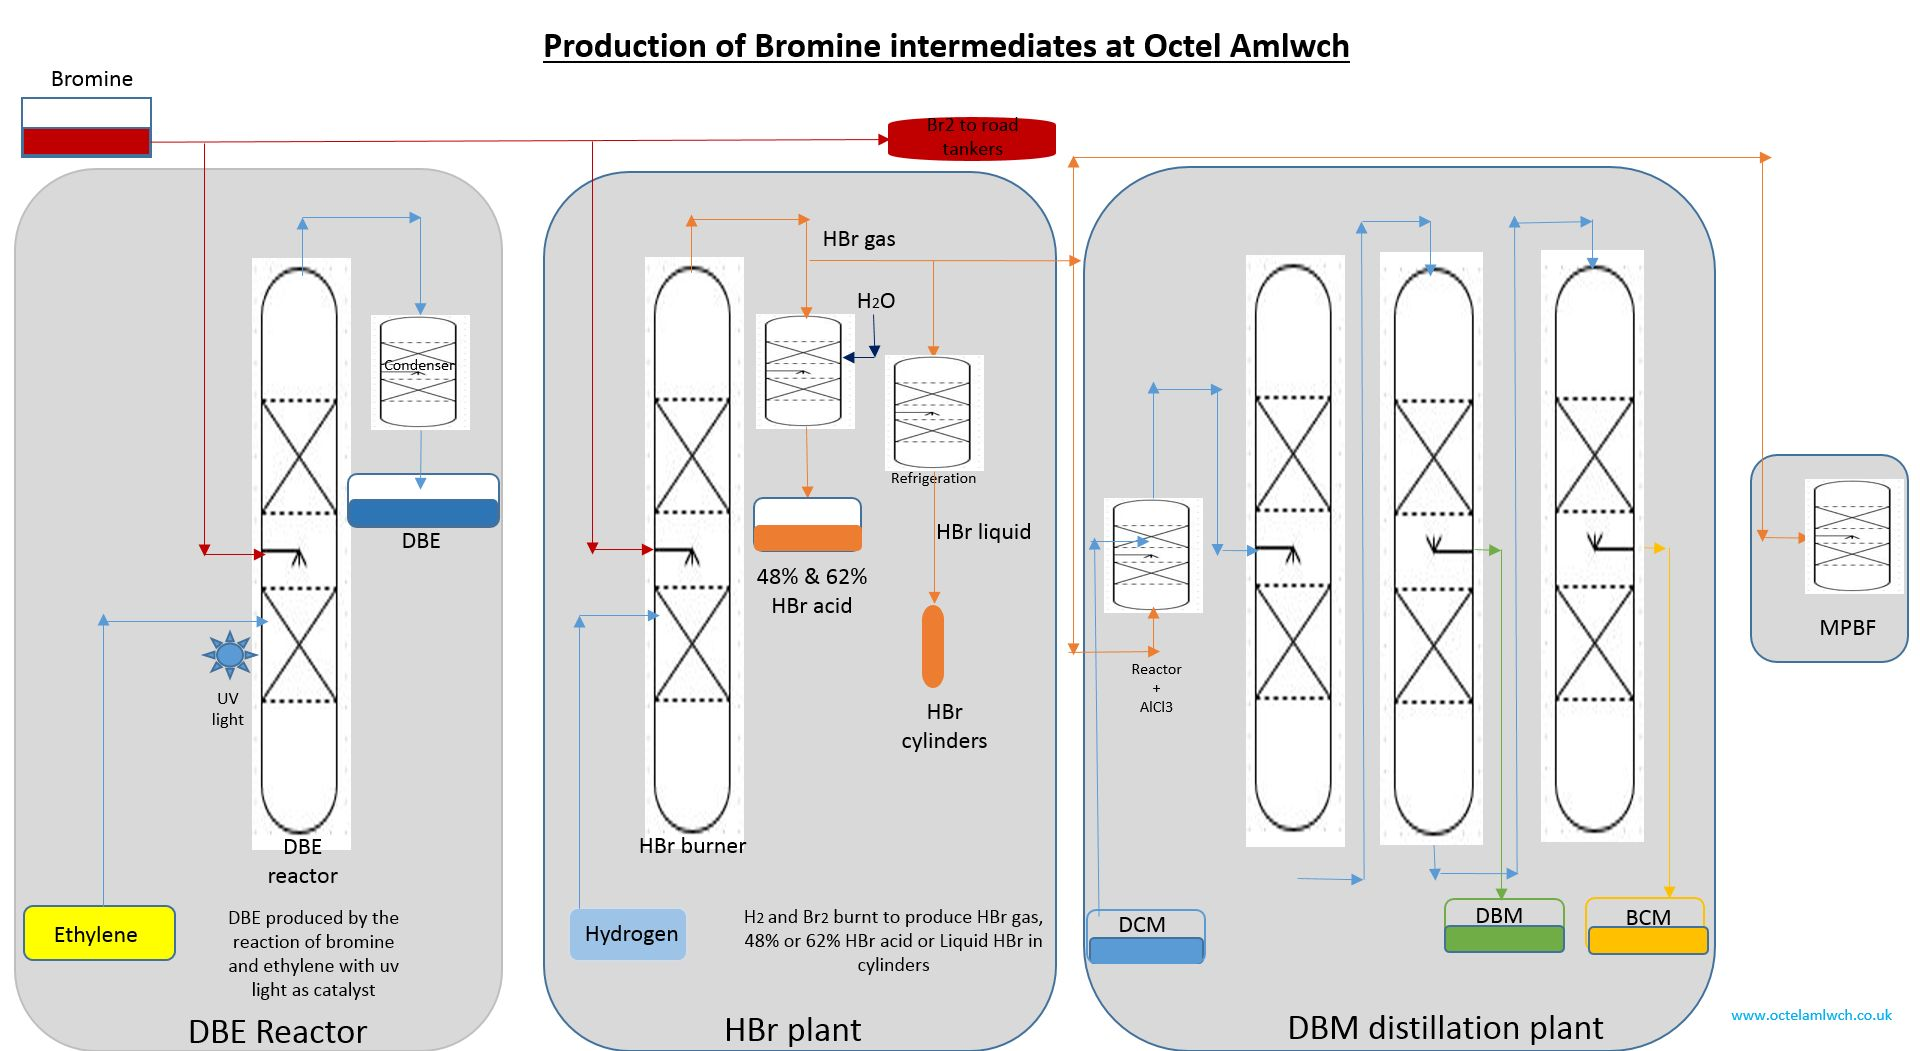 Production of bromine intermendiate at Octel Amlwch